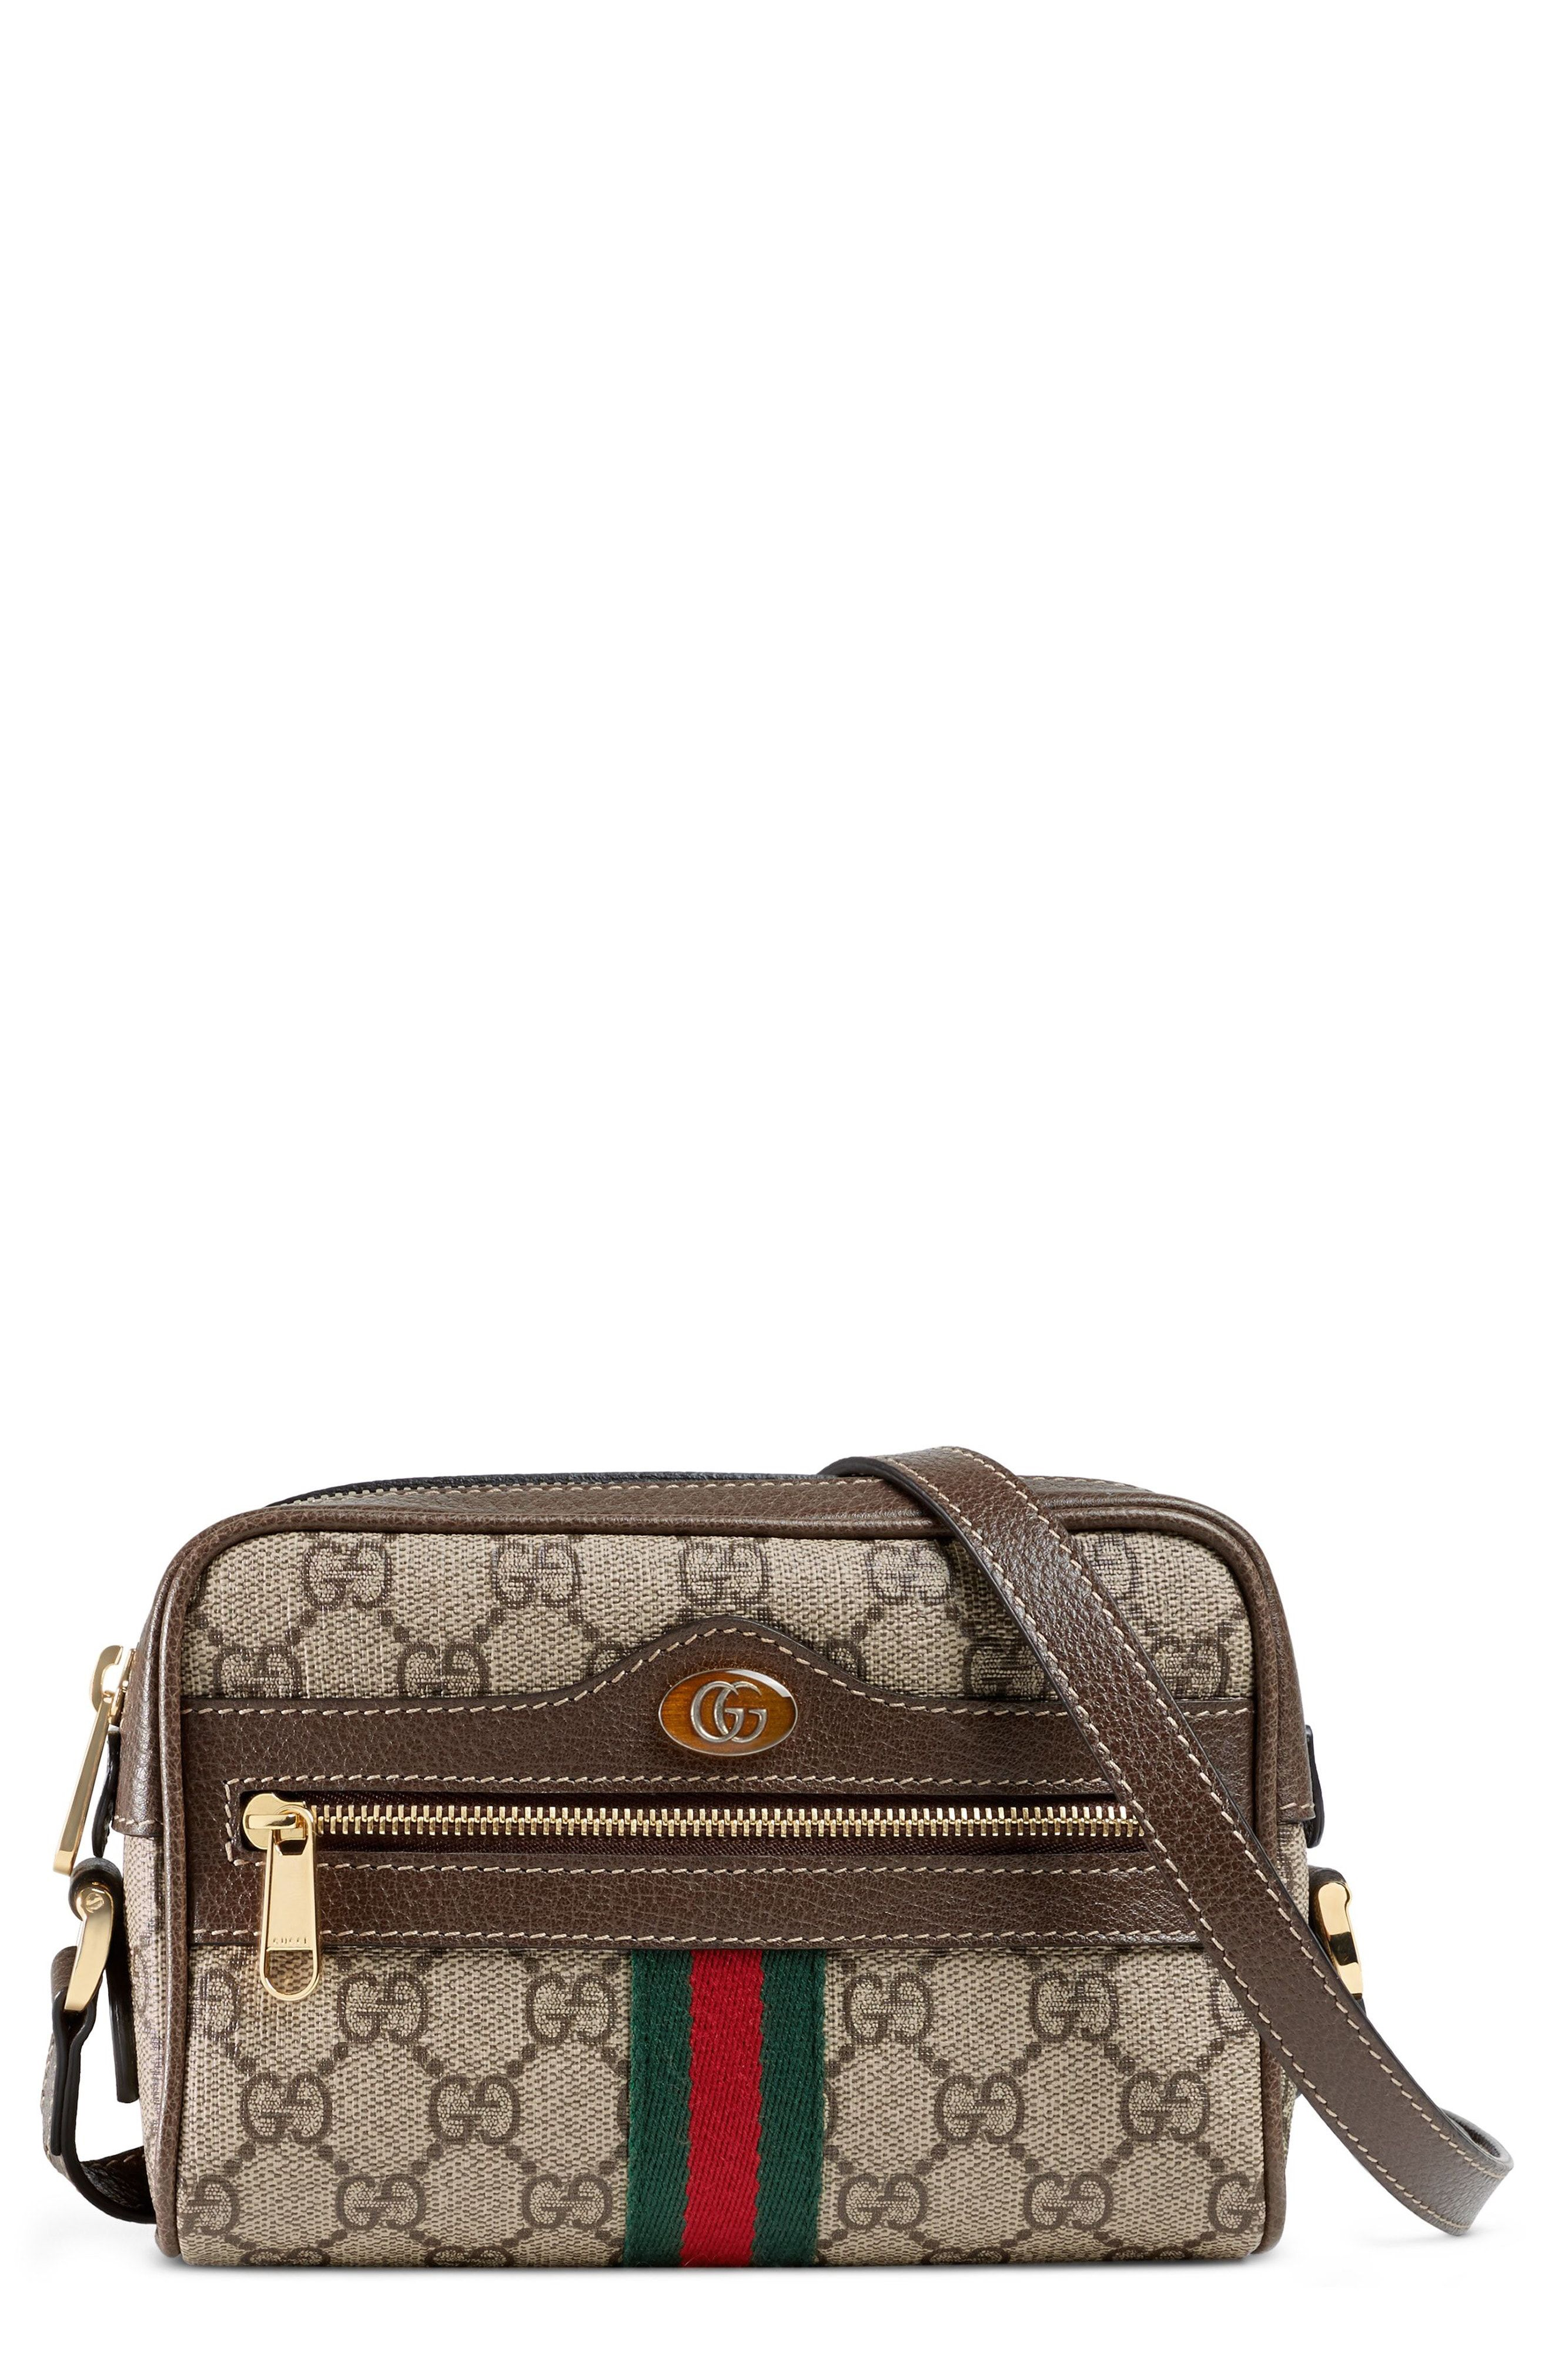 da952d829e0 Gucci Ophidia Small GG Supreme Canvas Crossbody Bag available at  Nordstrom